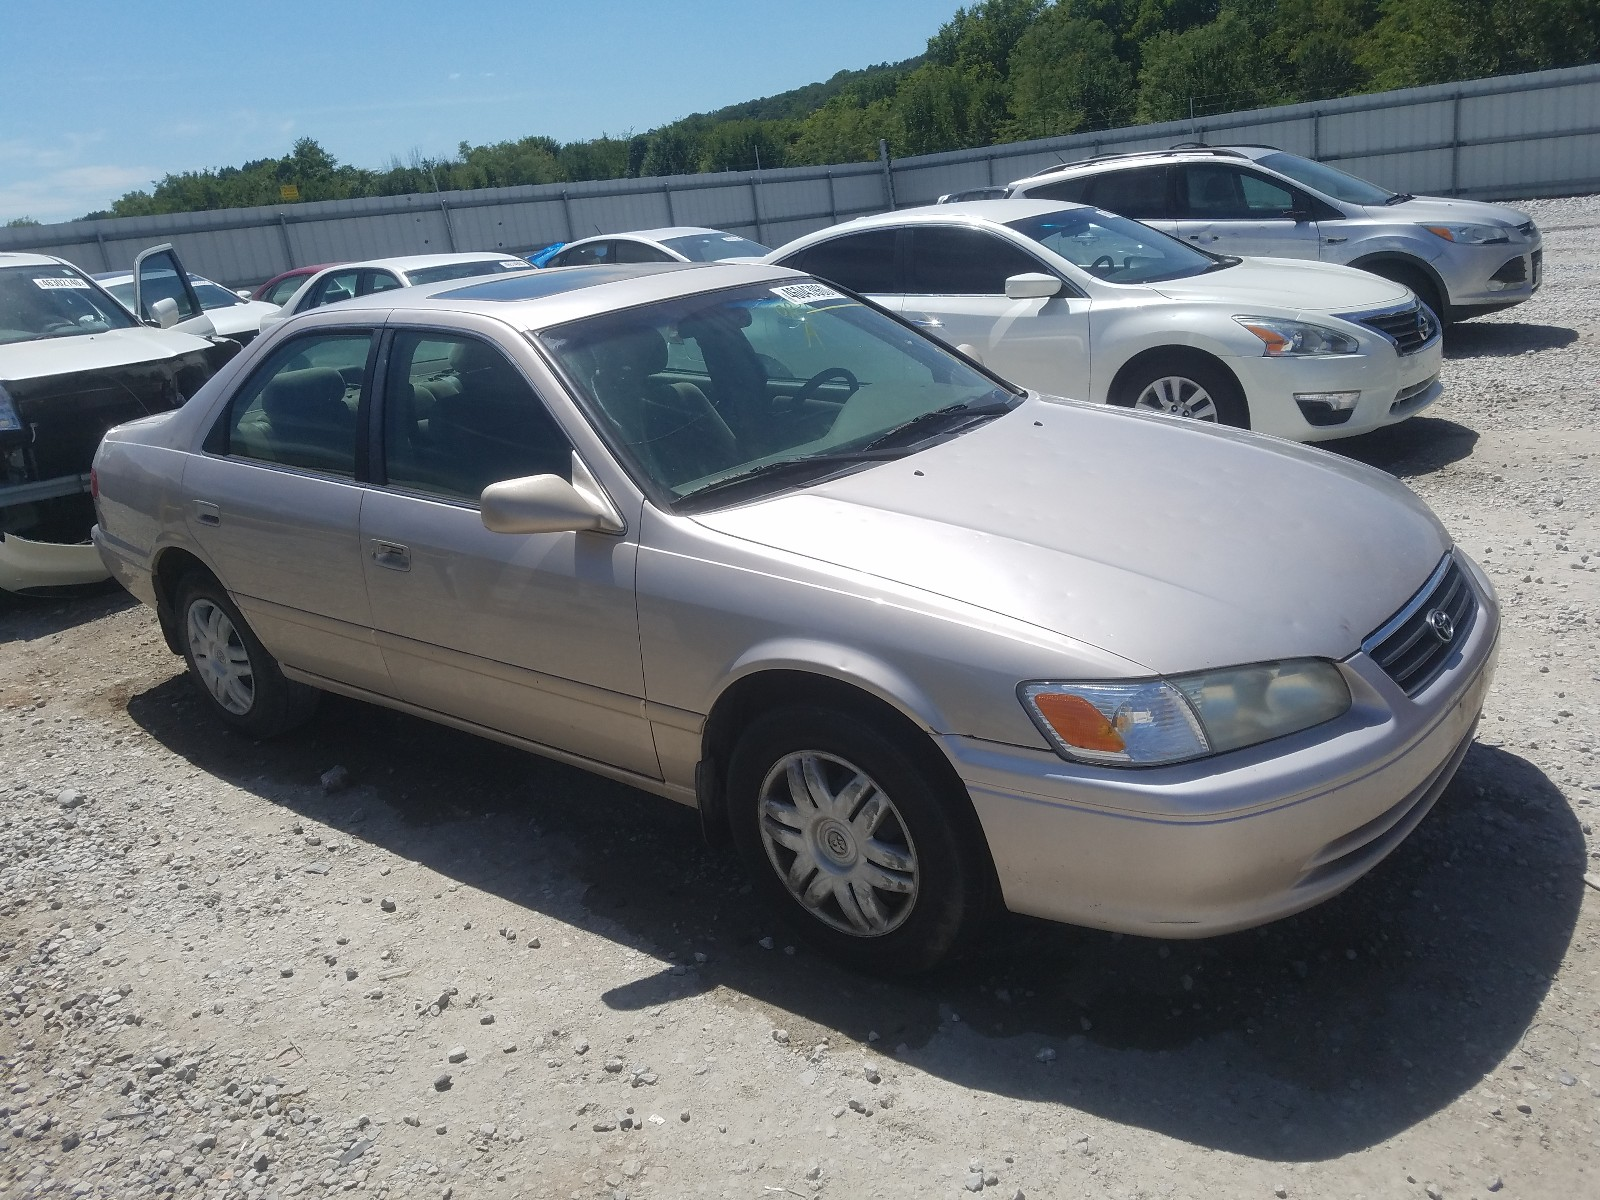 2000 toyota camry ce for sale at copart prairie grove ar lot 46043960 salvagereseller com 2000 toyota camry ce for sale at copart prairie grove ar lot 46043960 salvagereseller com